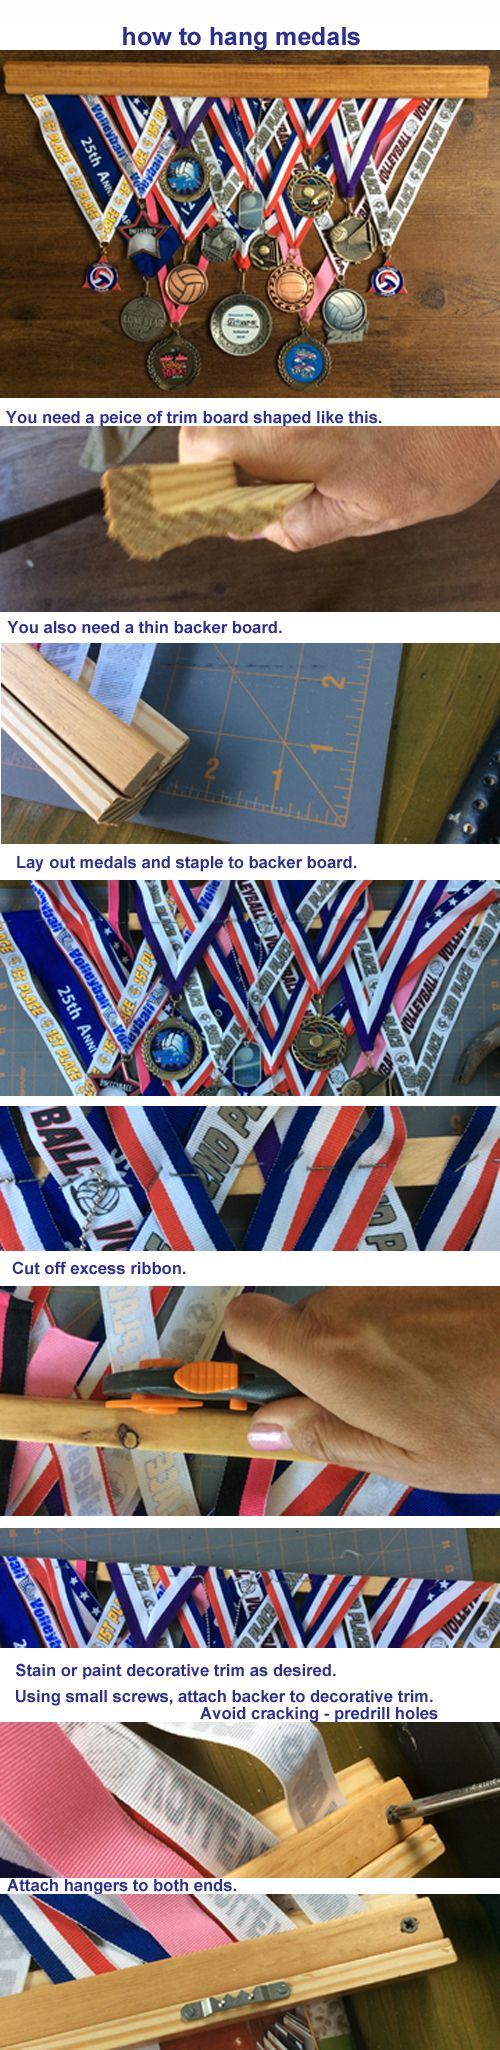 "I have had so many repins of my ""cool way to hang medals"" pin that I have decided to load the instructions too. Here they are."